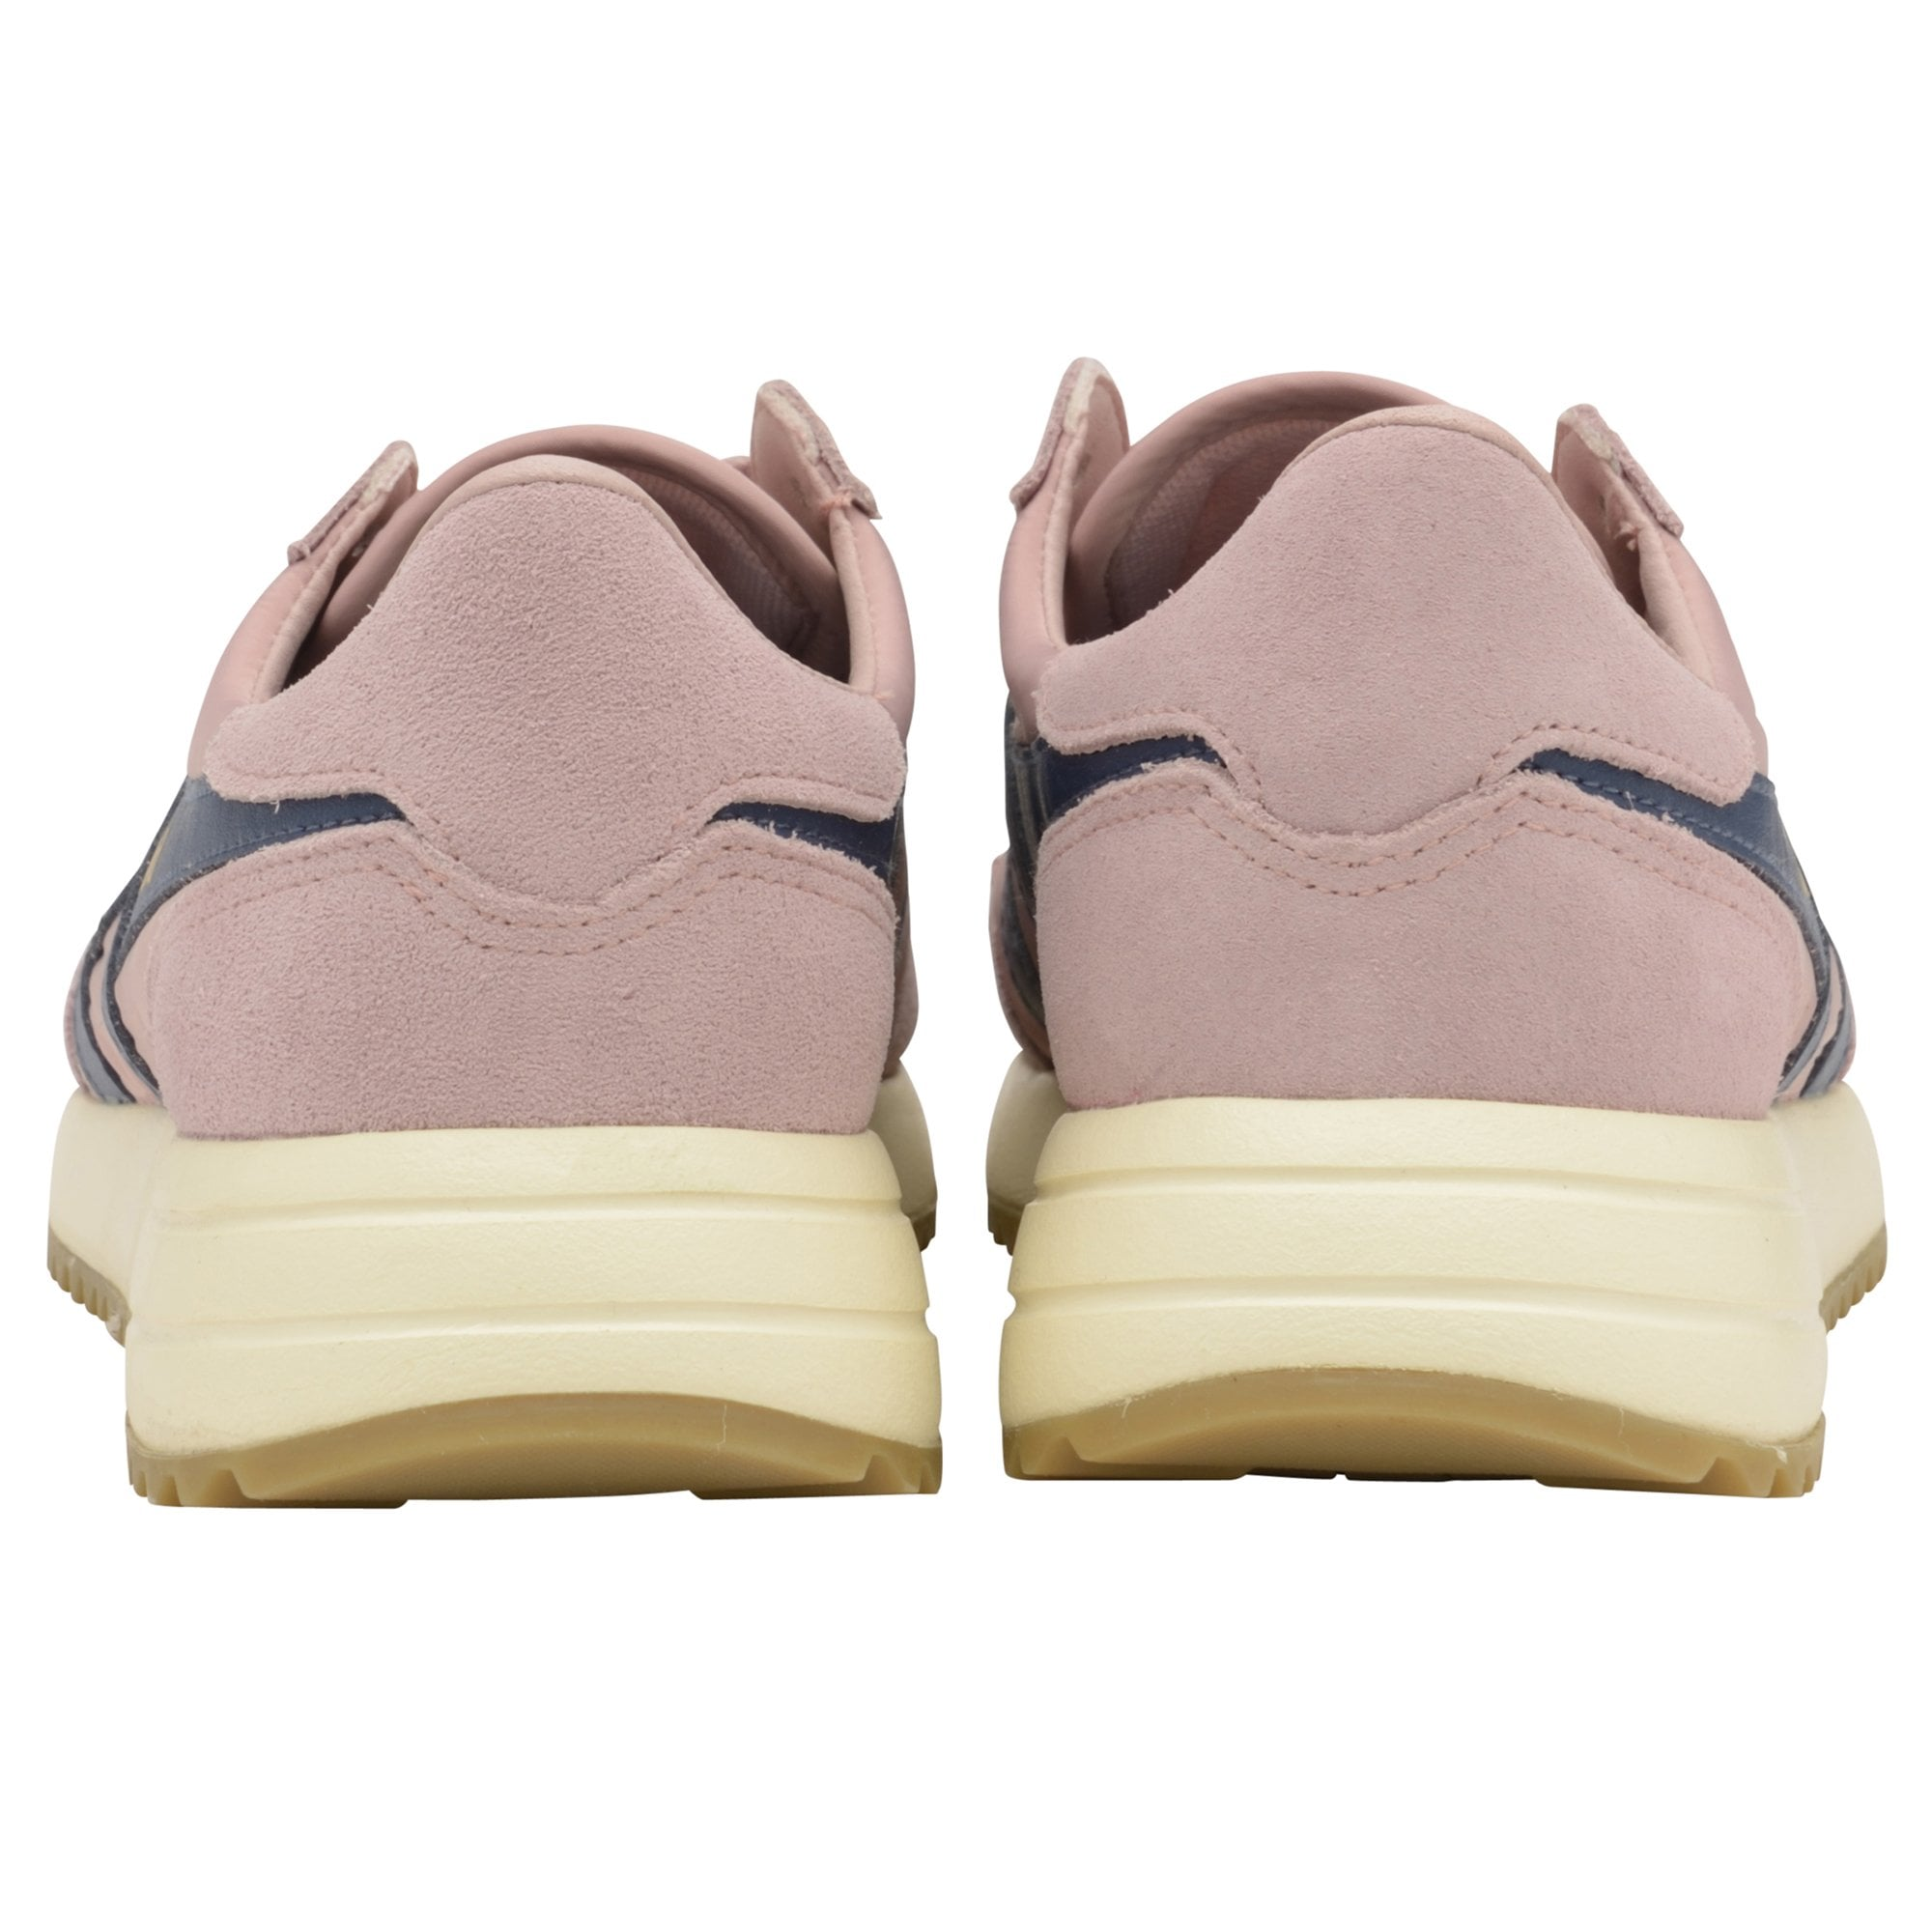 Women's Vancouver Trainer